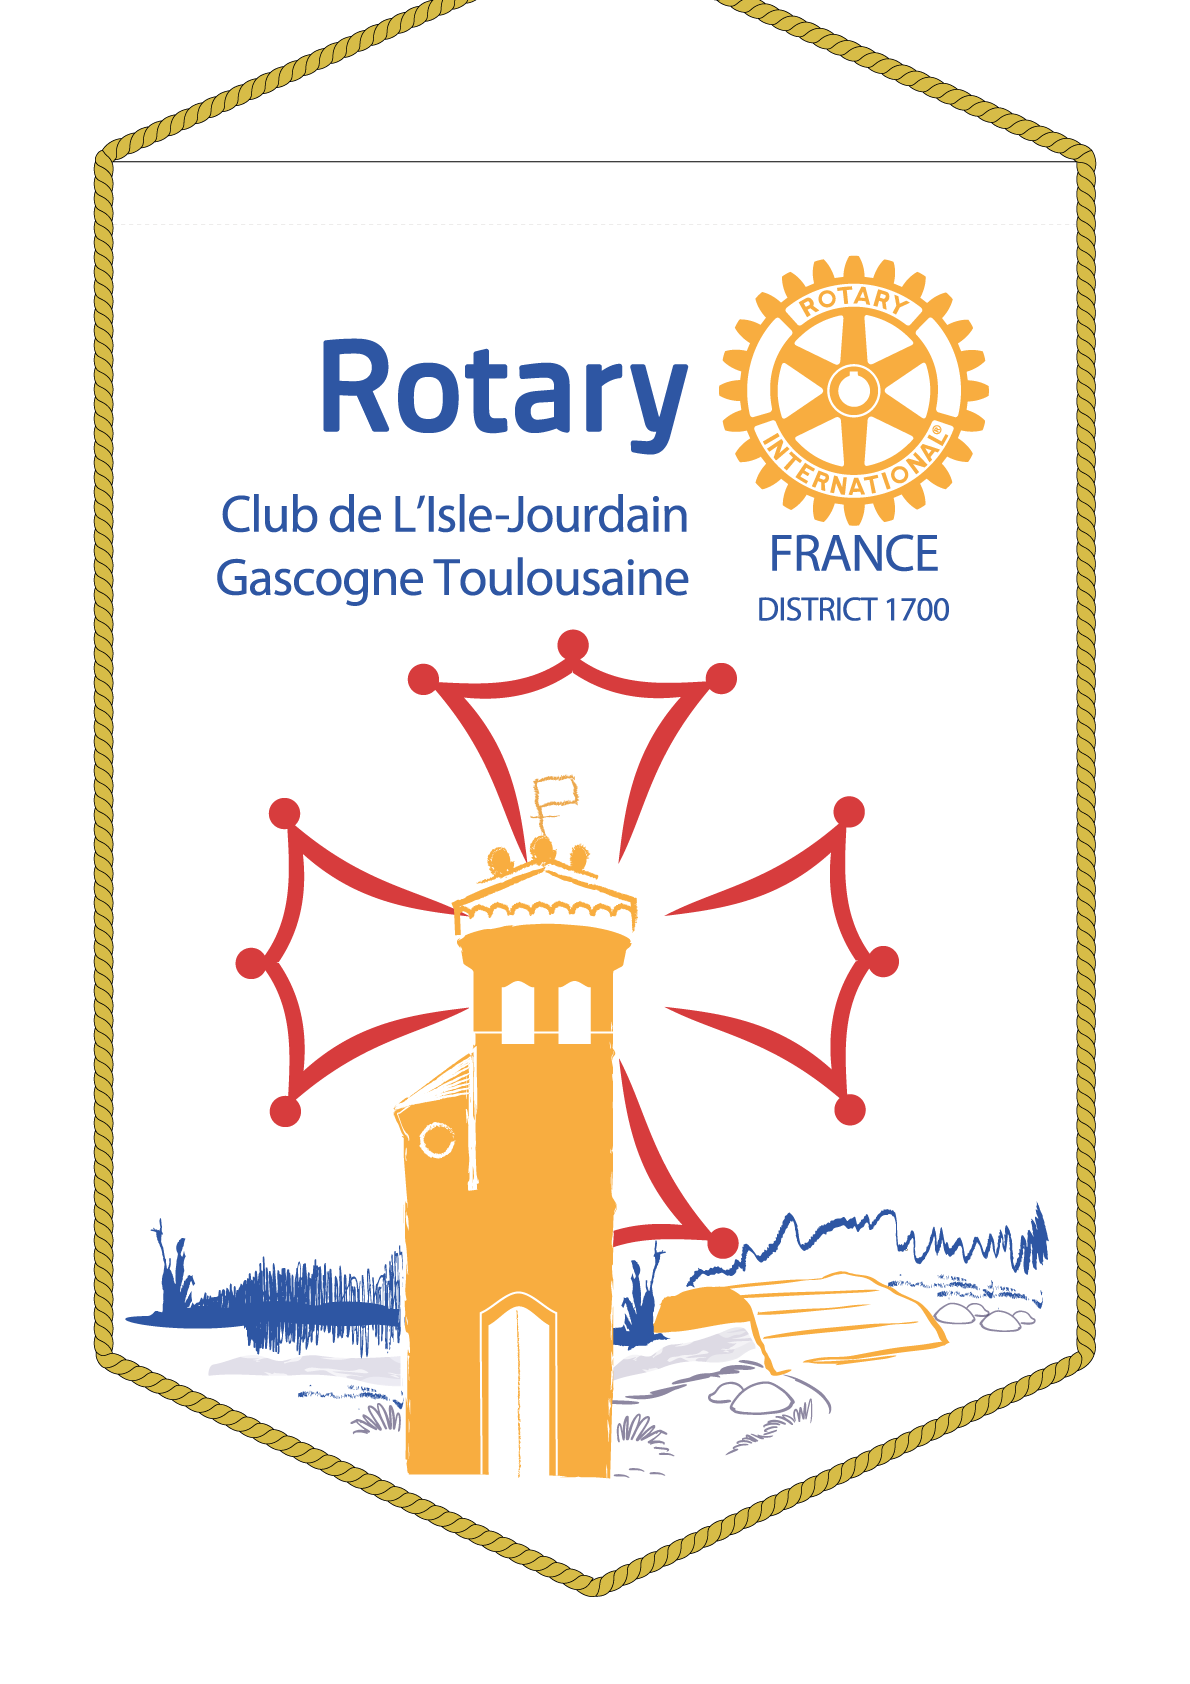 FANION ROTARY CLUB ISLE JOURDAIN GASCOGNE TOULOUSAINE